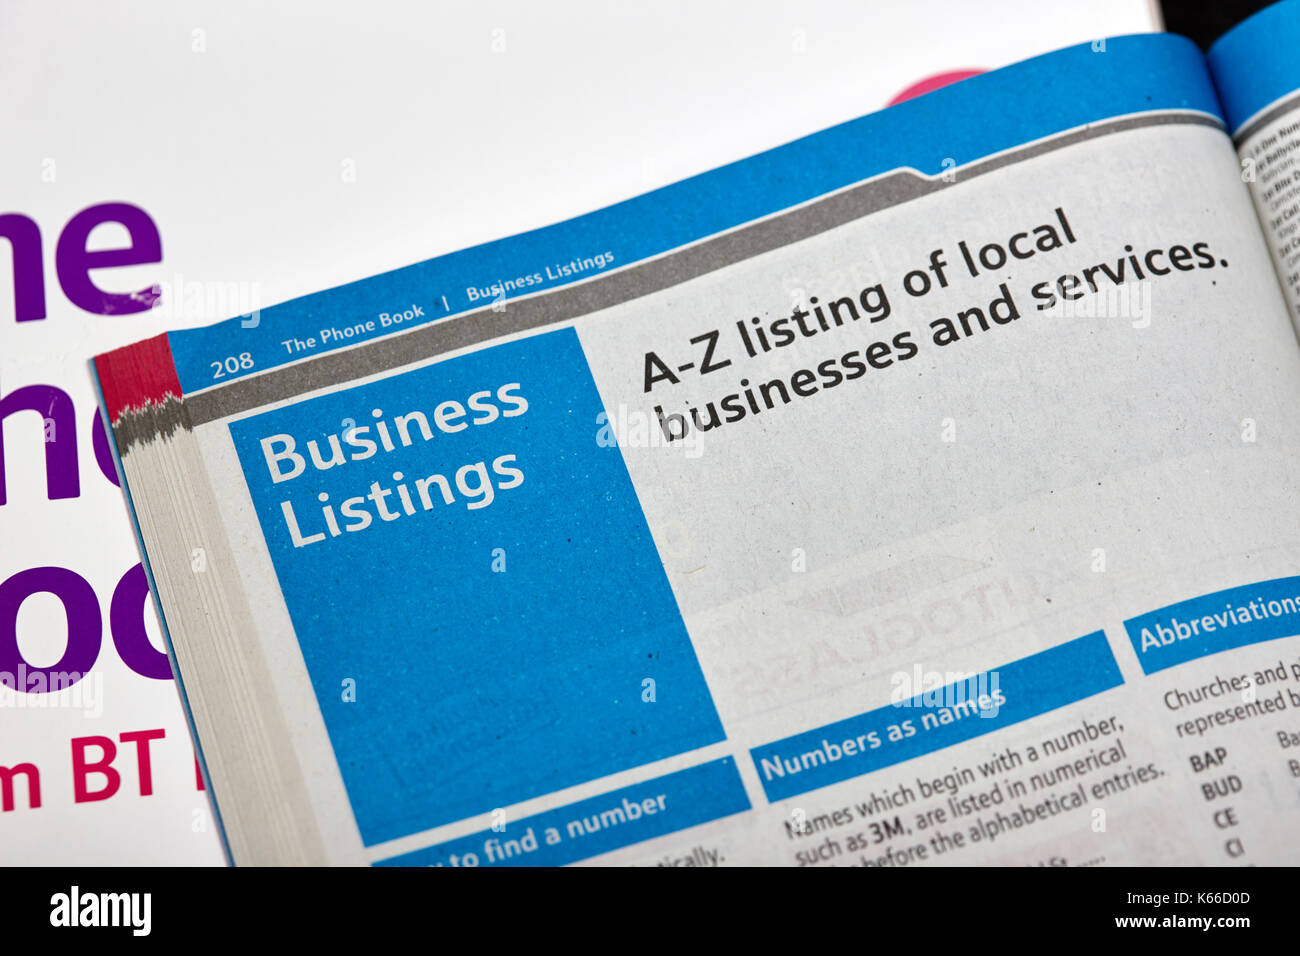 a-z business listings in the BT local telephone directory paper edition - Stock Image